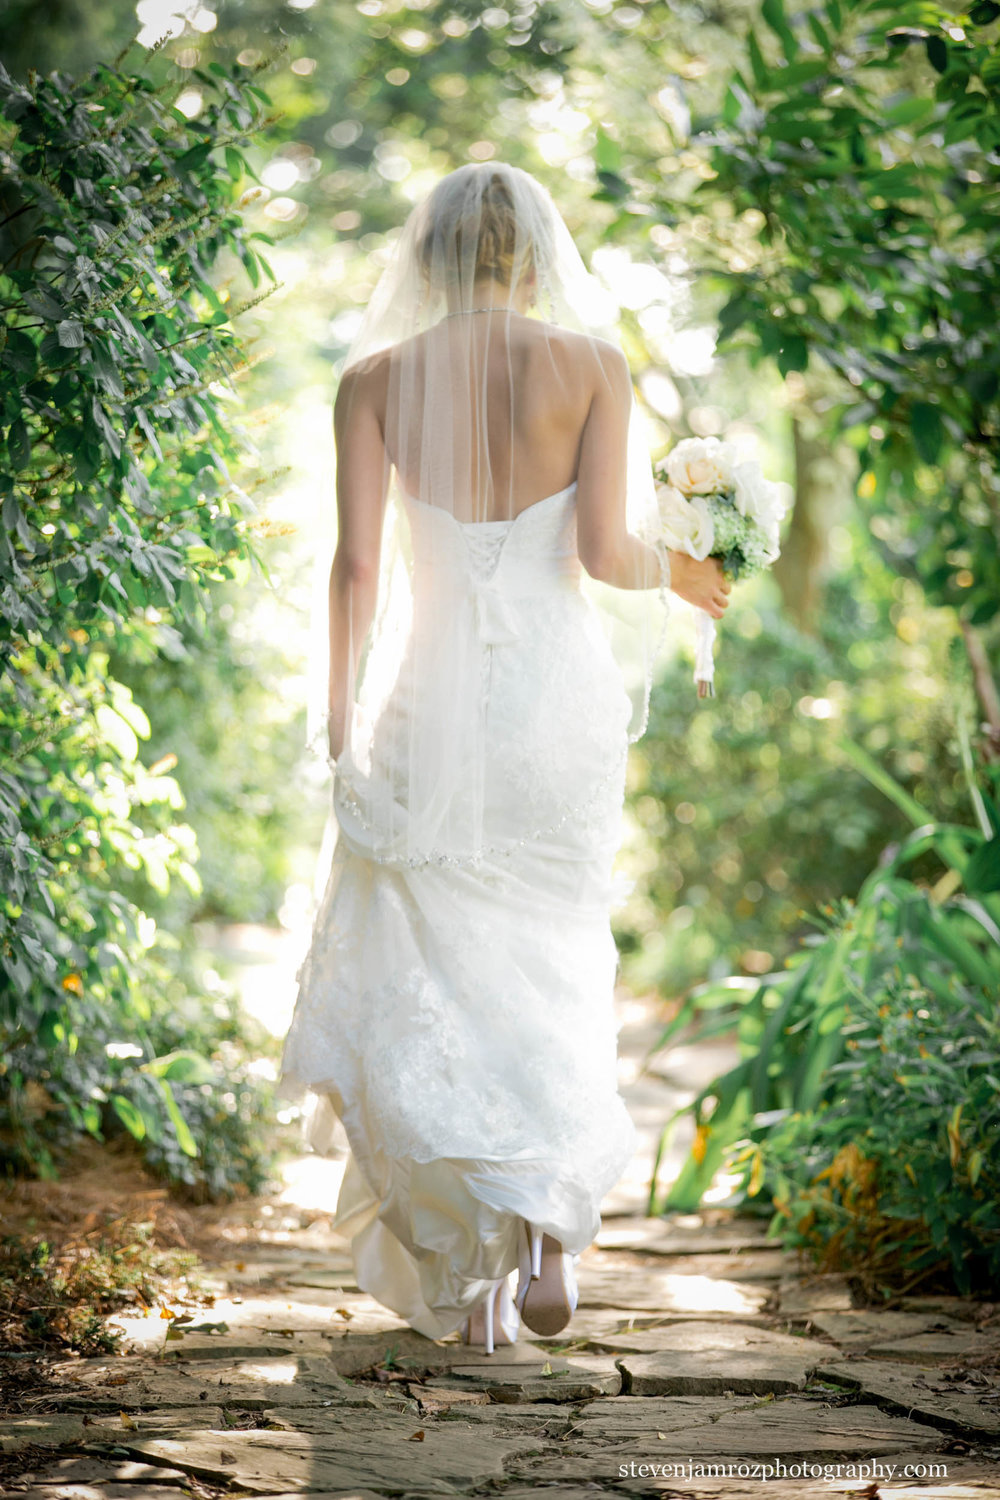 walking-bride-nc-state-jc-raulston-arboretum-wedding-steven-jamroz-photography-0459.jpg